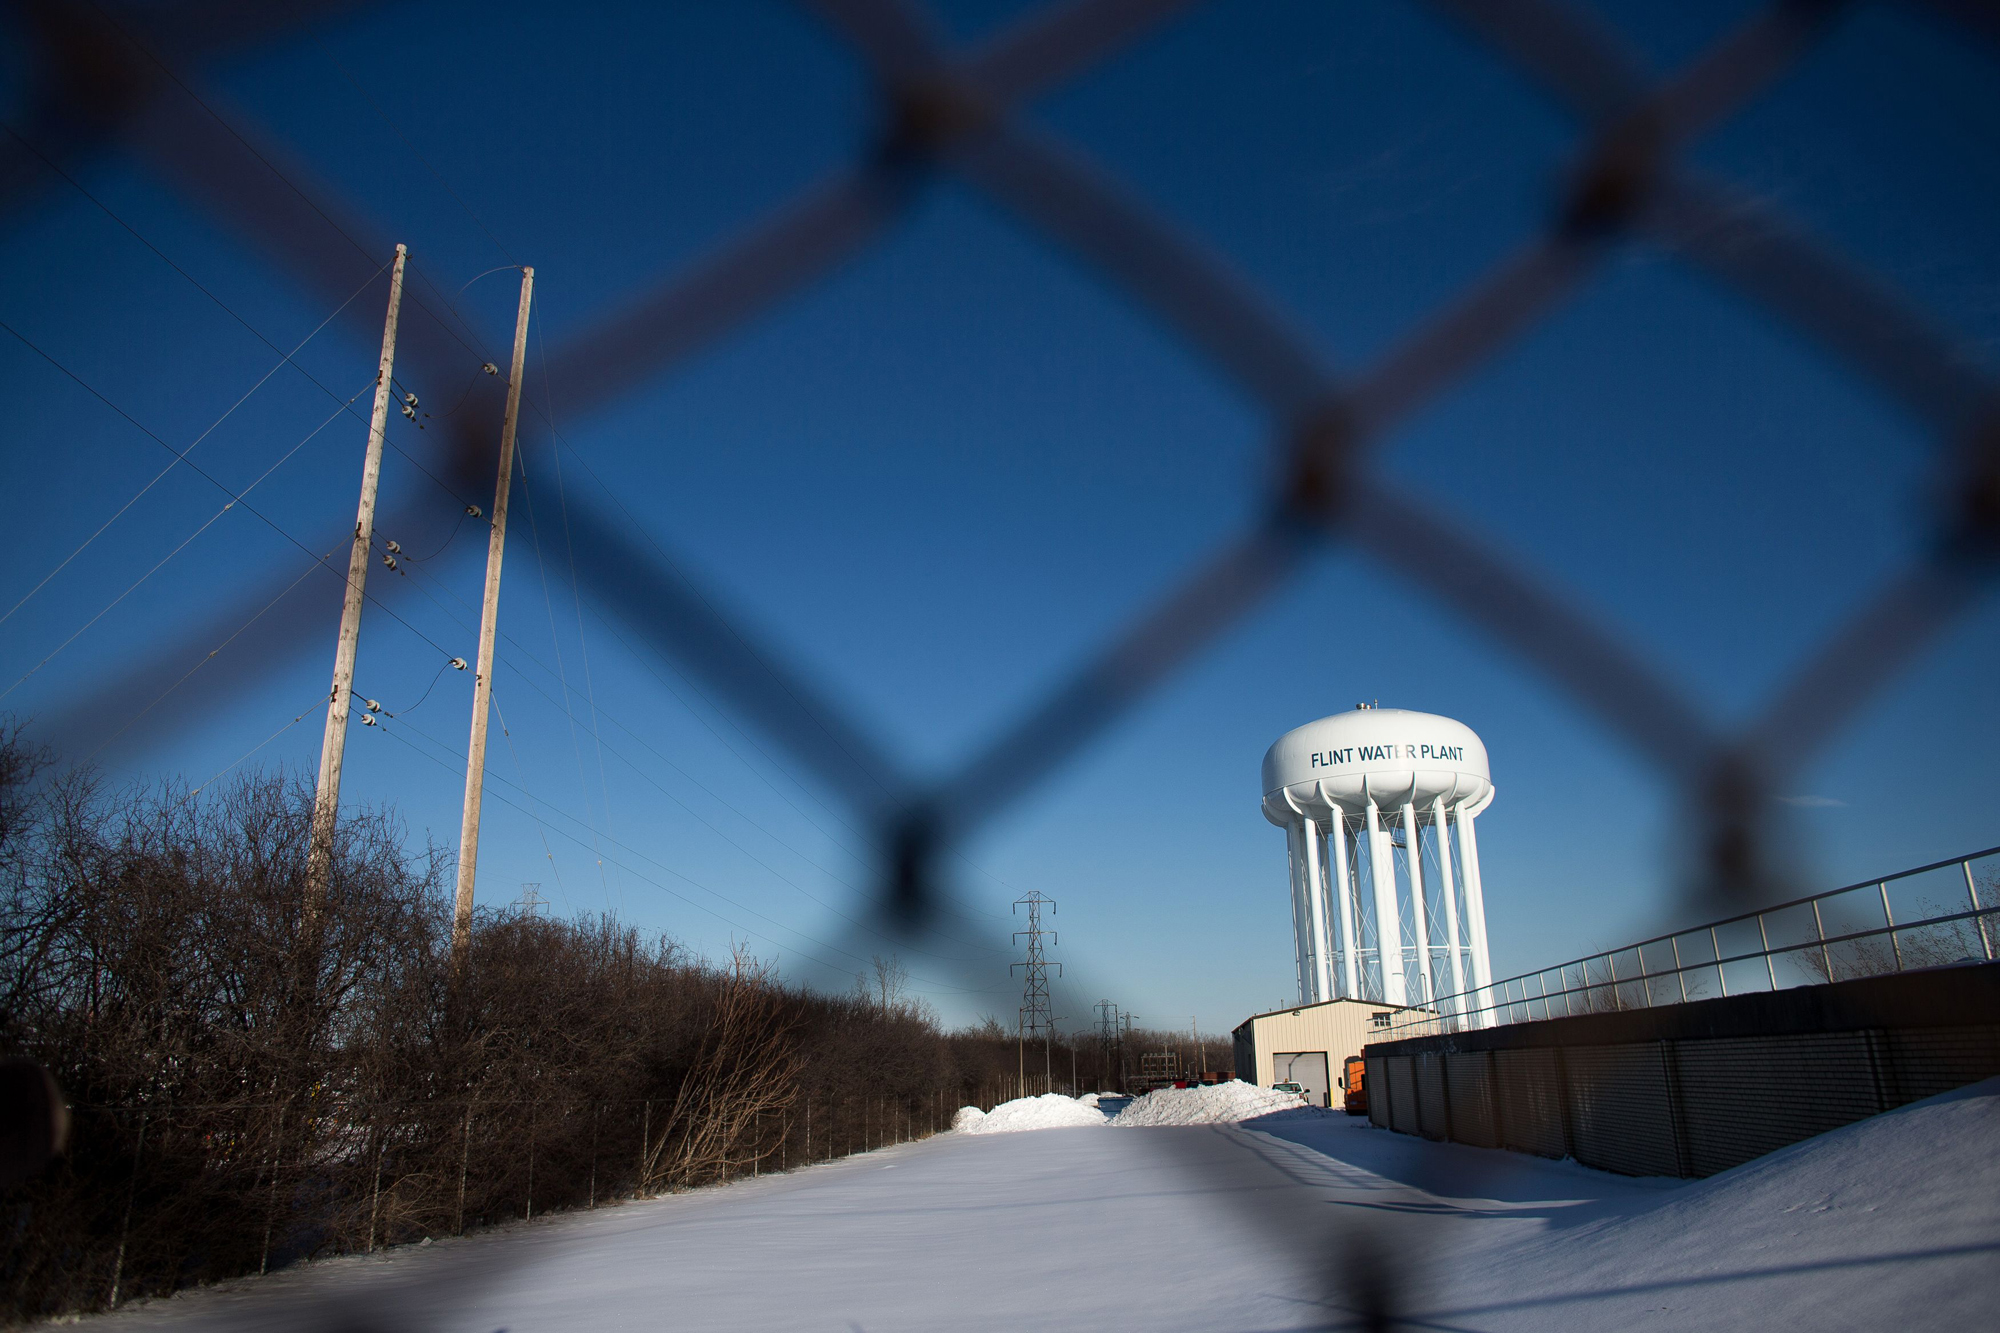 The water tower at the Flint Water Plant in Flint, Michigan, looms large over the city March 4, 2016 nearly 2 years after the start of the city's water crisis.